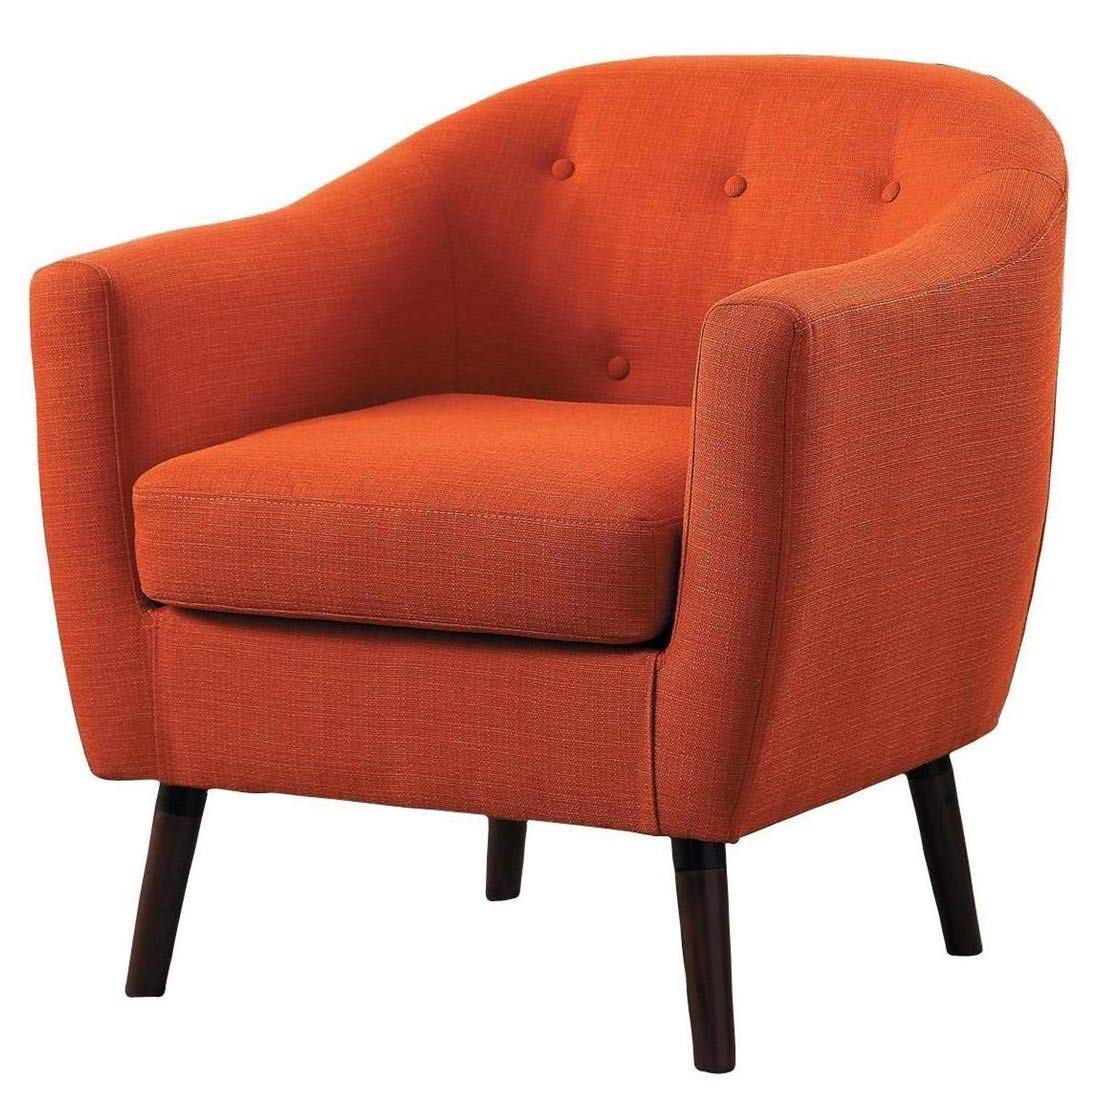 Burnt Orange Accent Chair With Exposed Black Frame And Tufted: Cheap Accent Chair Fabric, Find Accent Chair Fabric Deals